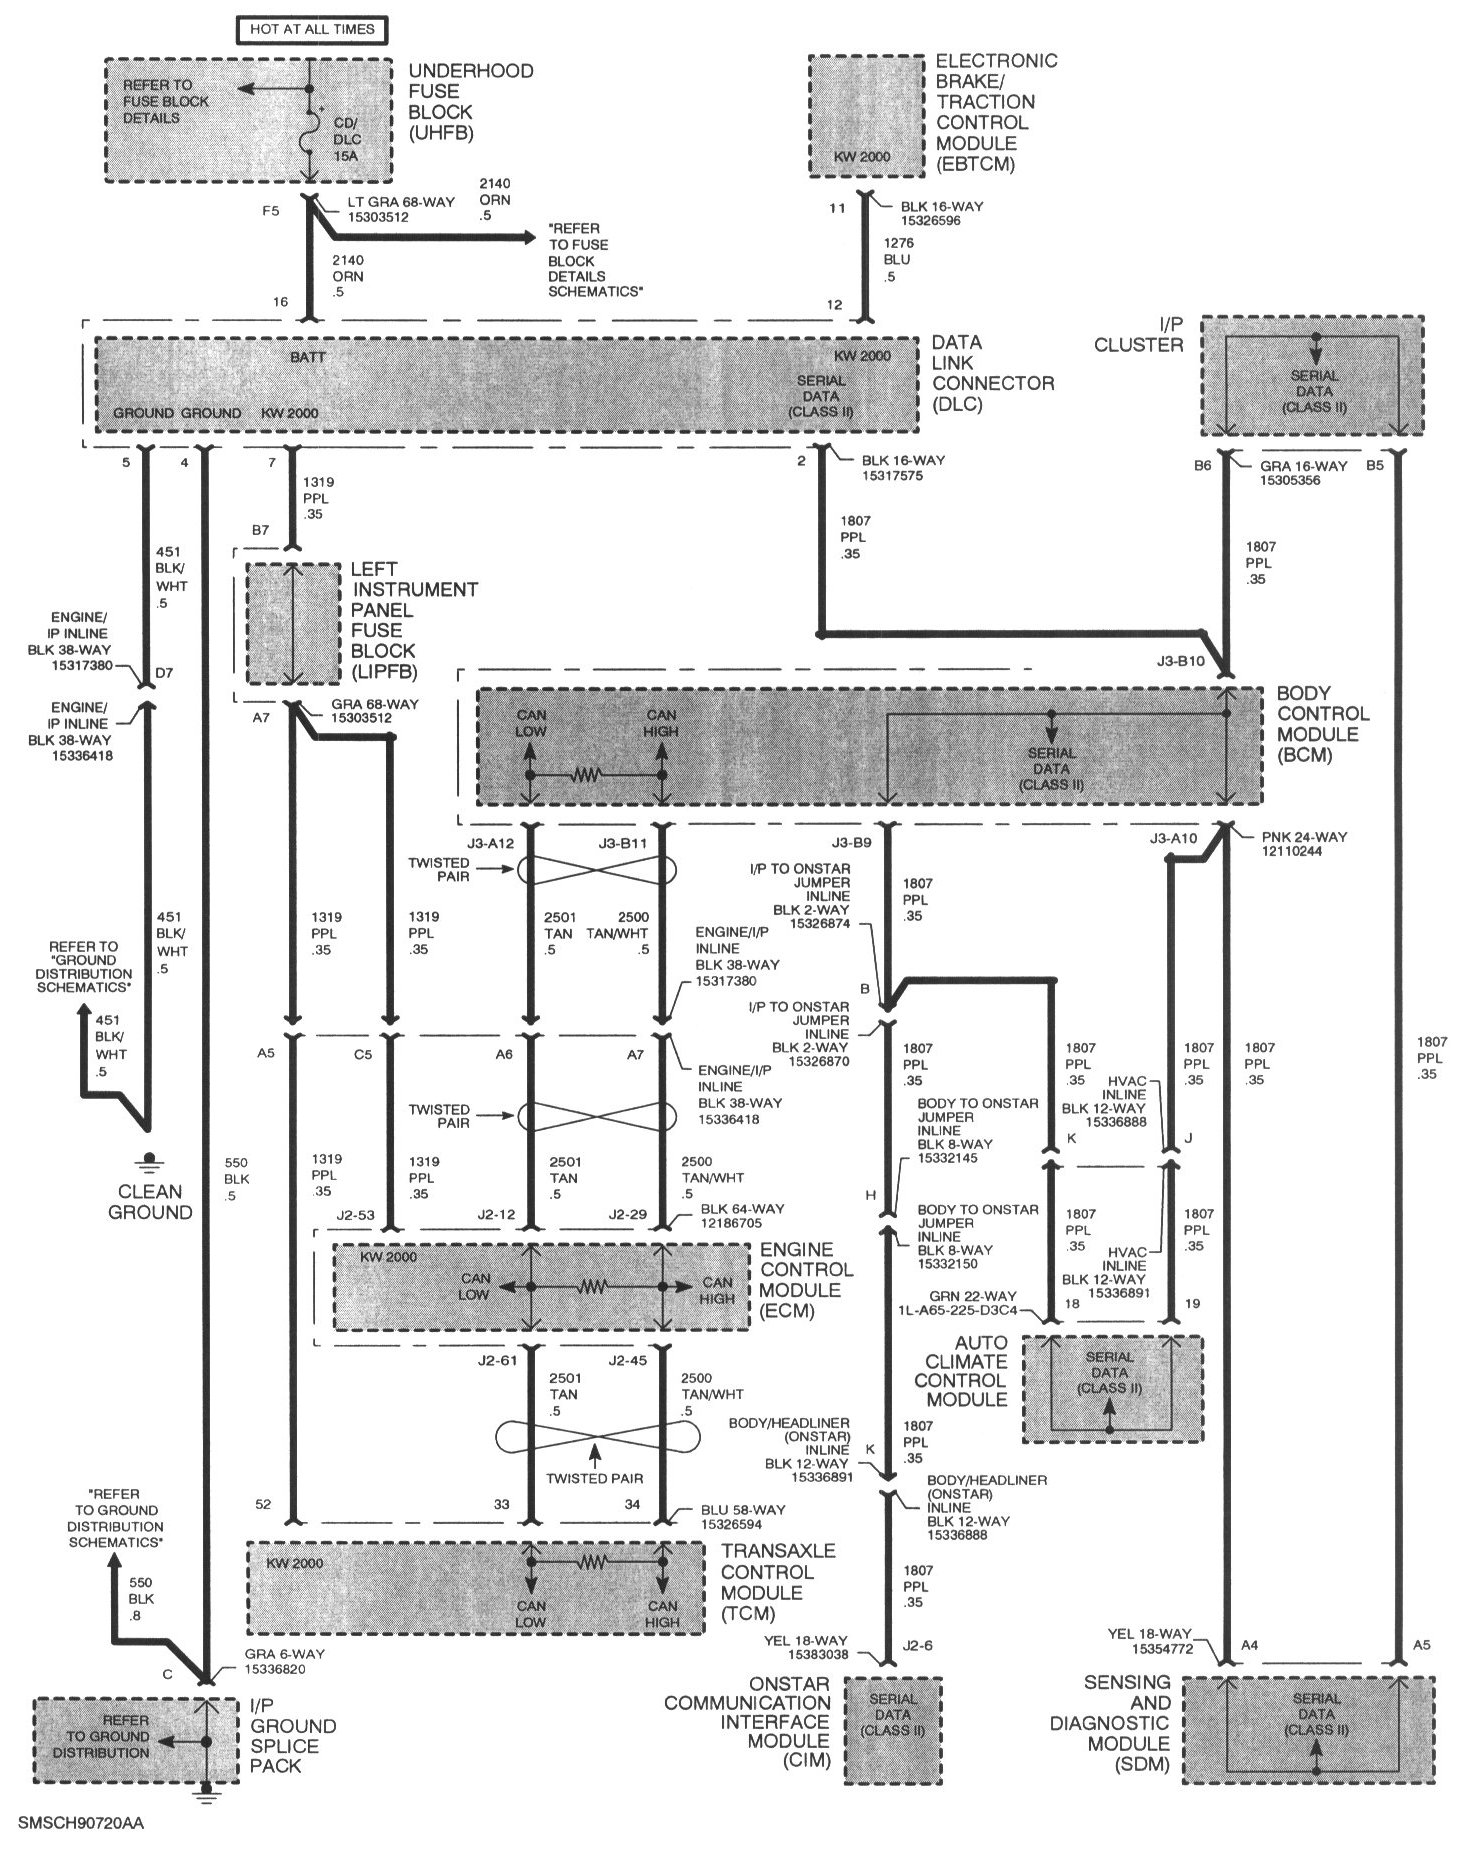 hight resolution of 2002 saturn l200 fuse box diagram gecmqfk wiring diagram for 2001 saturn the